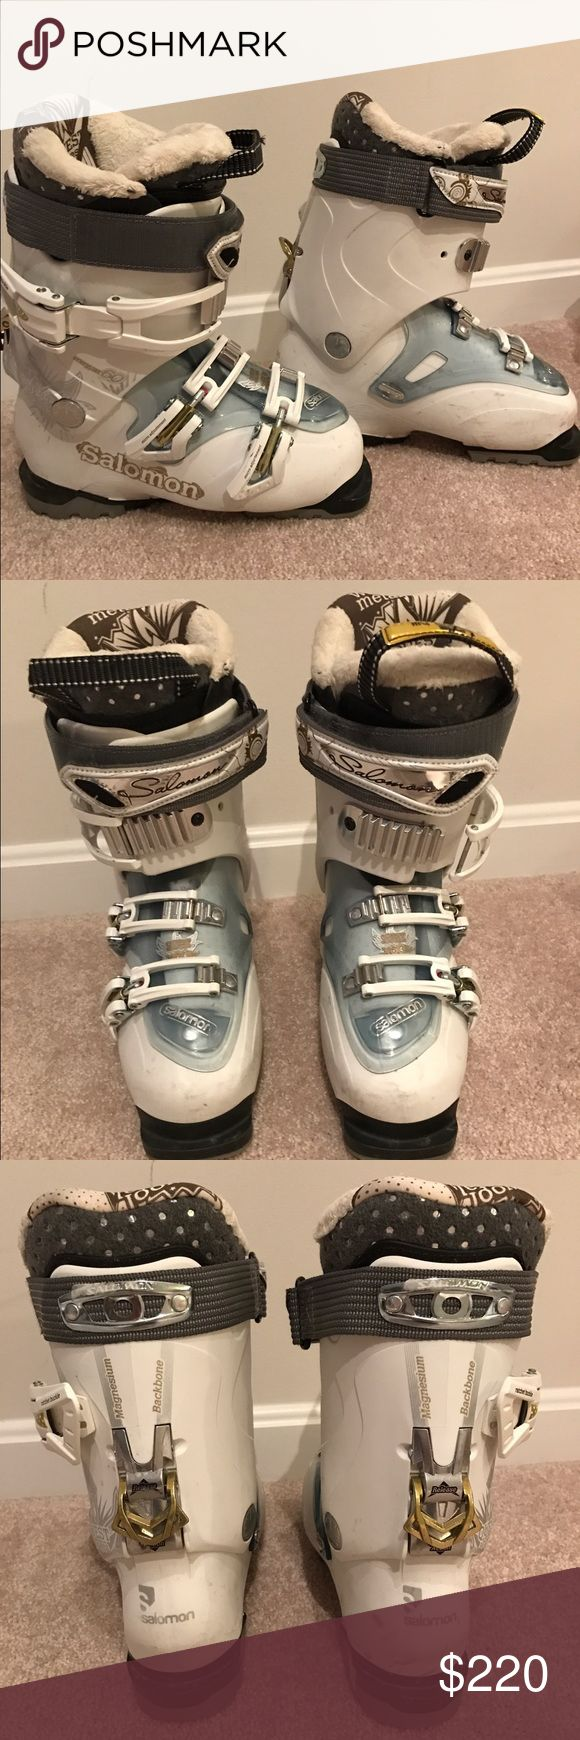 Salomon ski boots (women) Women's Salomon Quest downhill ski boots. Size Mondo 22/23 (6-6.5). Used only a few times, condition shows it. High quality warm liner. Excellent condition. Originally paid $350 from REI Salomon Other